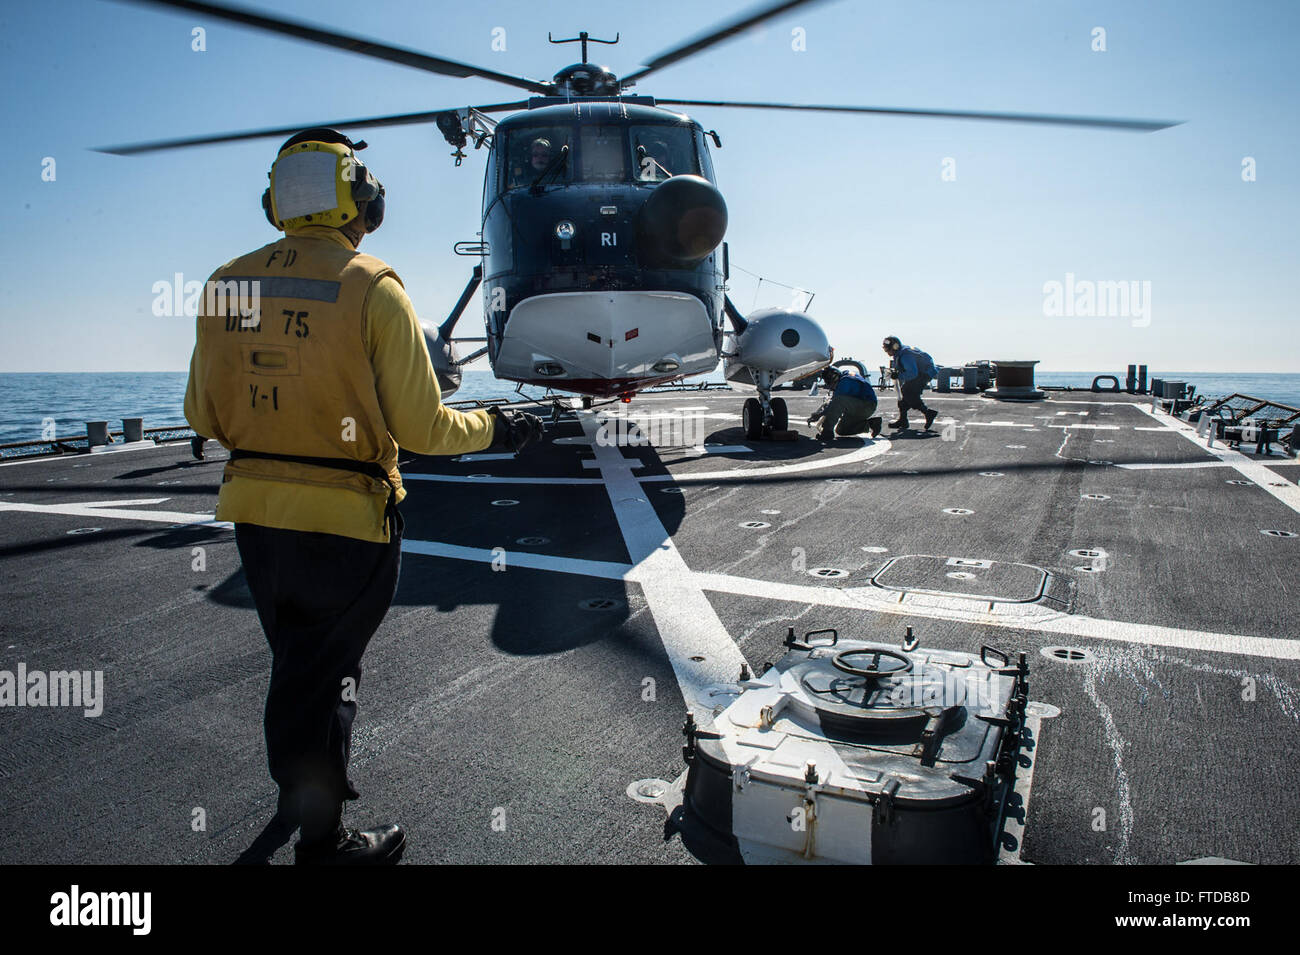 150406-N-JN664-025 ATLANTIC OCEAN (April 6, 2015) USS Donald Cook (DDG 75) conducts flight operations with a Sikorsky Stock Photo